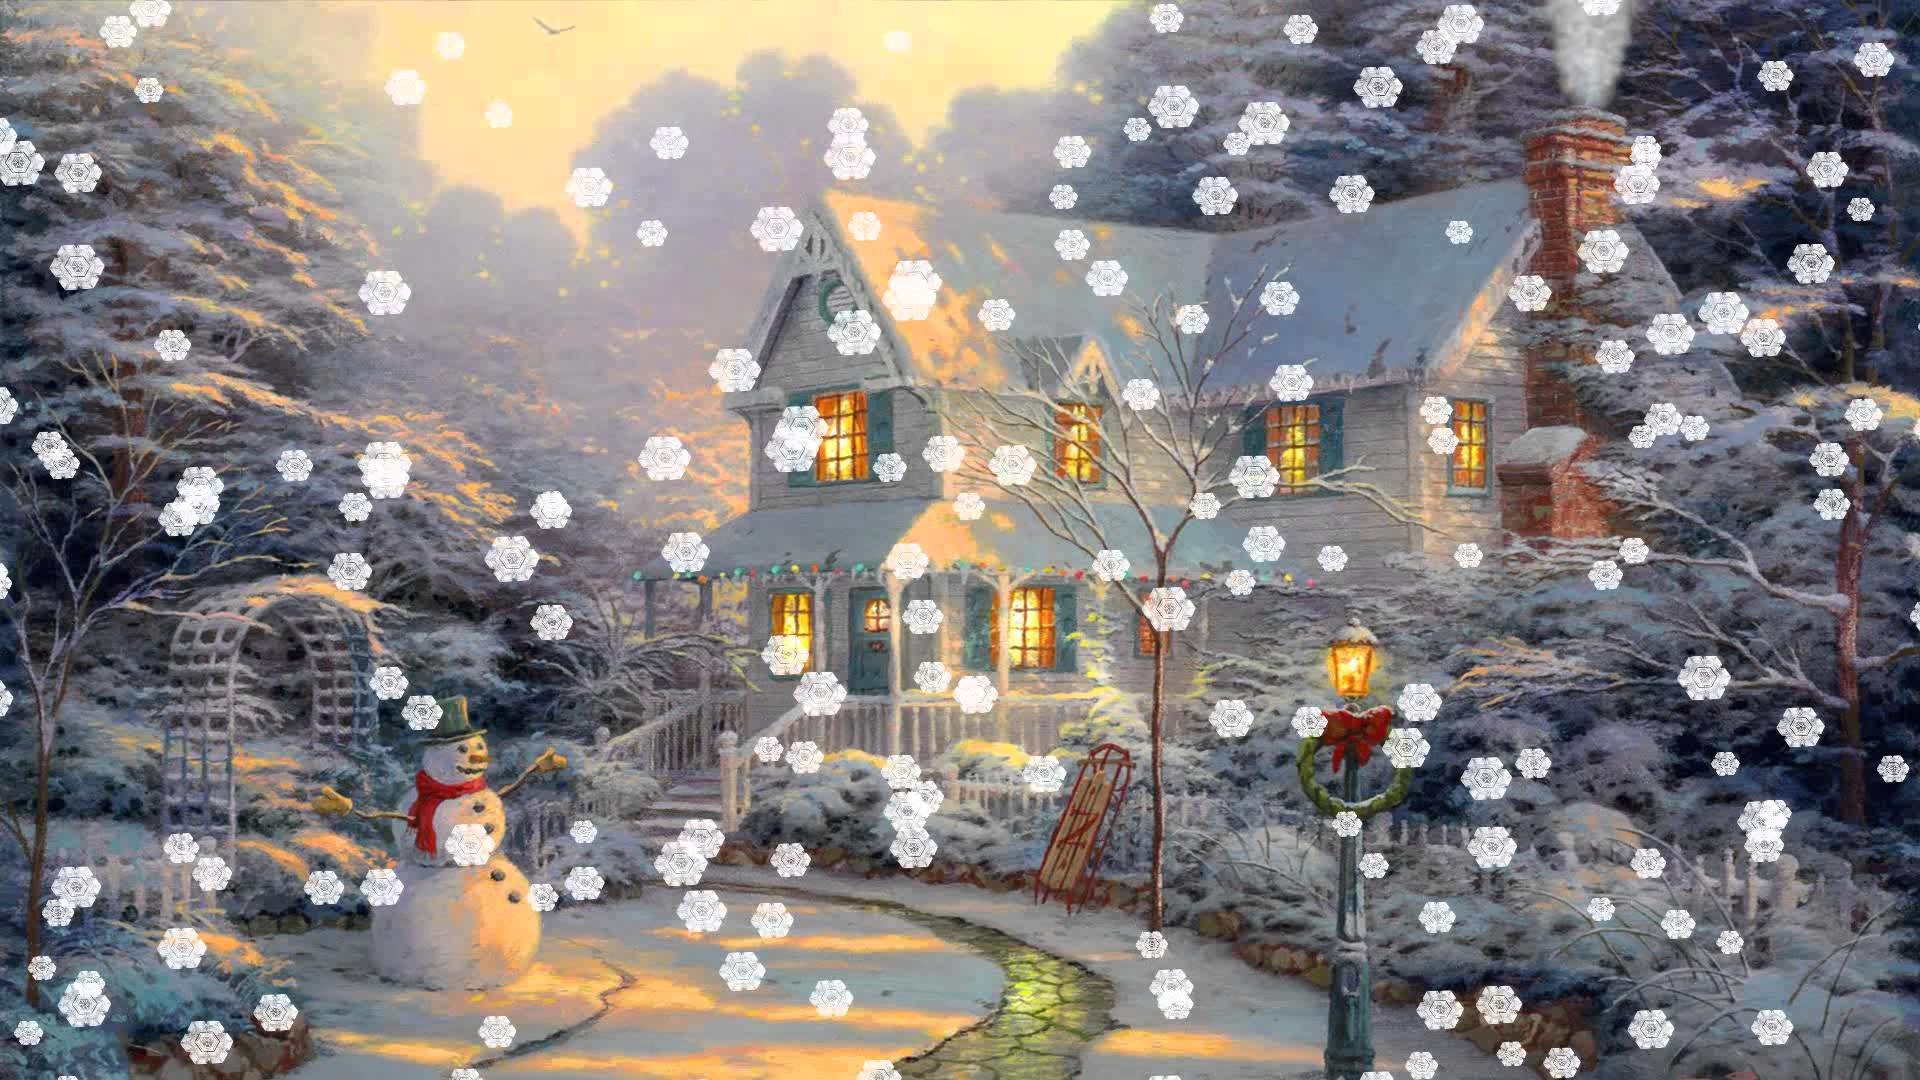 1920x1080, Christmas Eve Animated Wallpaper Http - Animated Wallpaper Christmas - HD Wallpaper